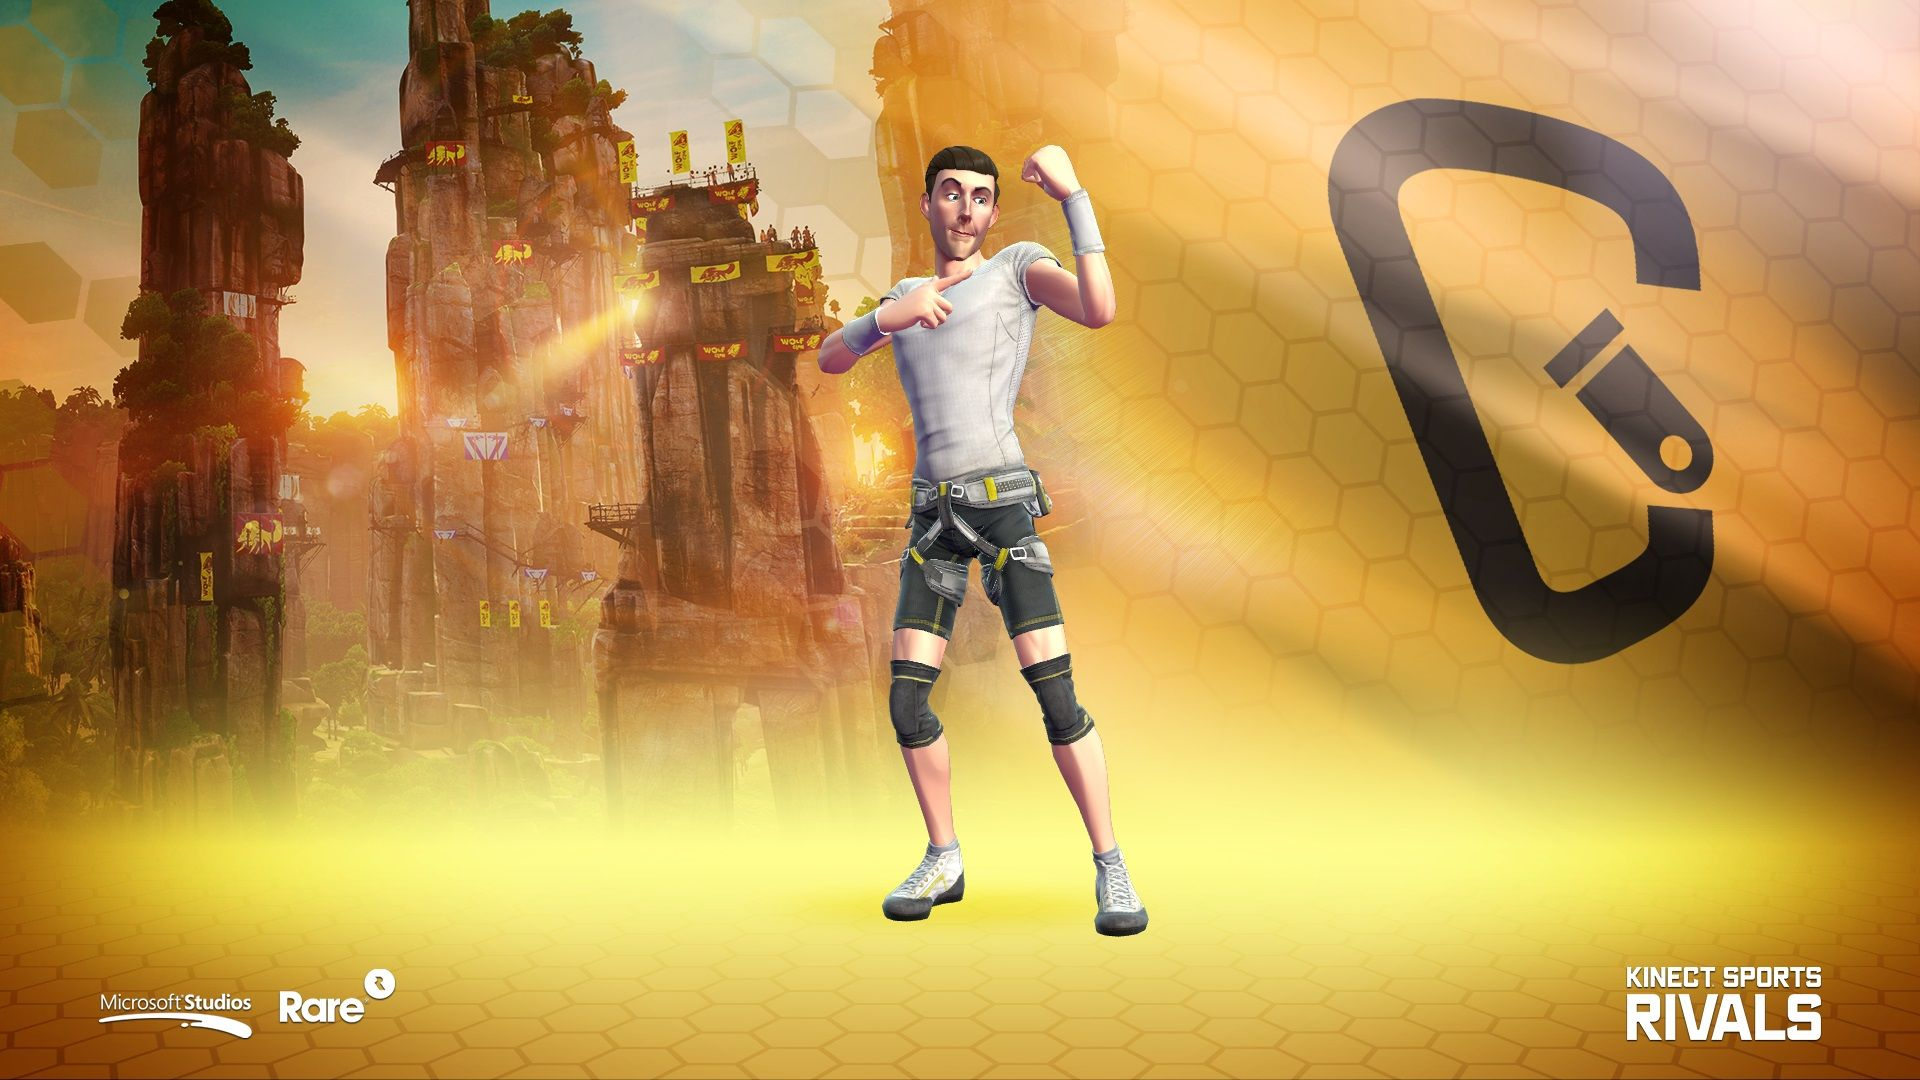 Kinect Sports Rivals Review